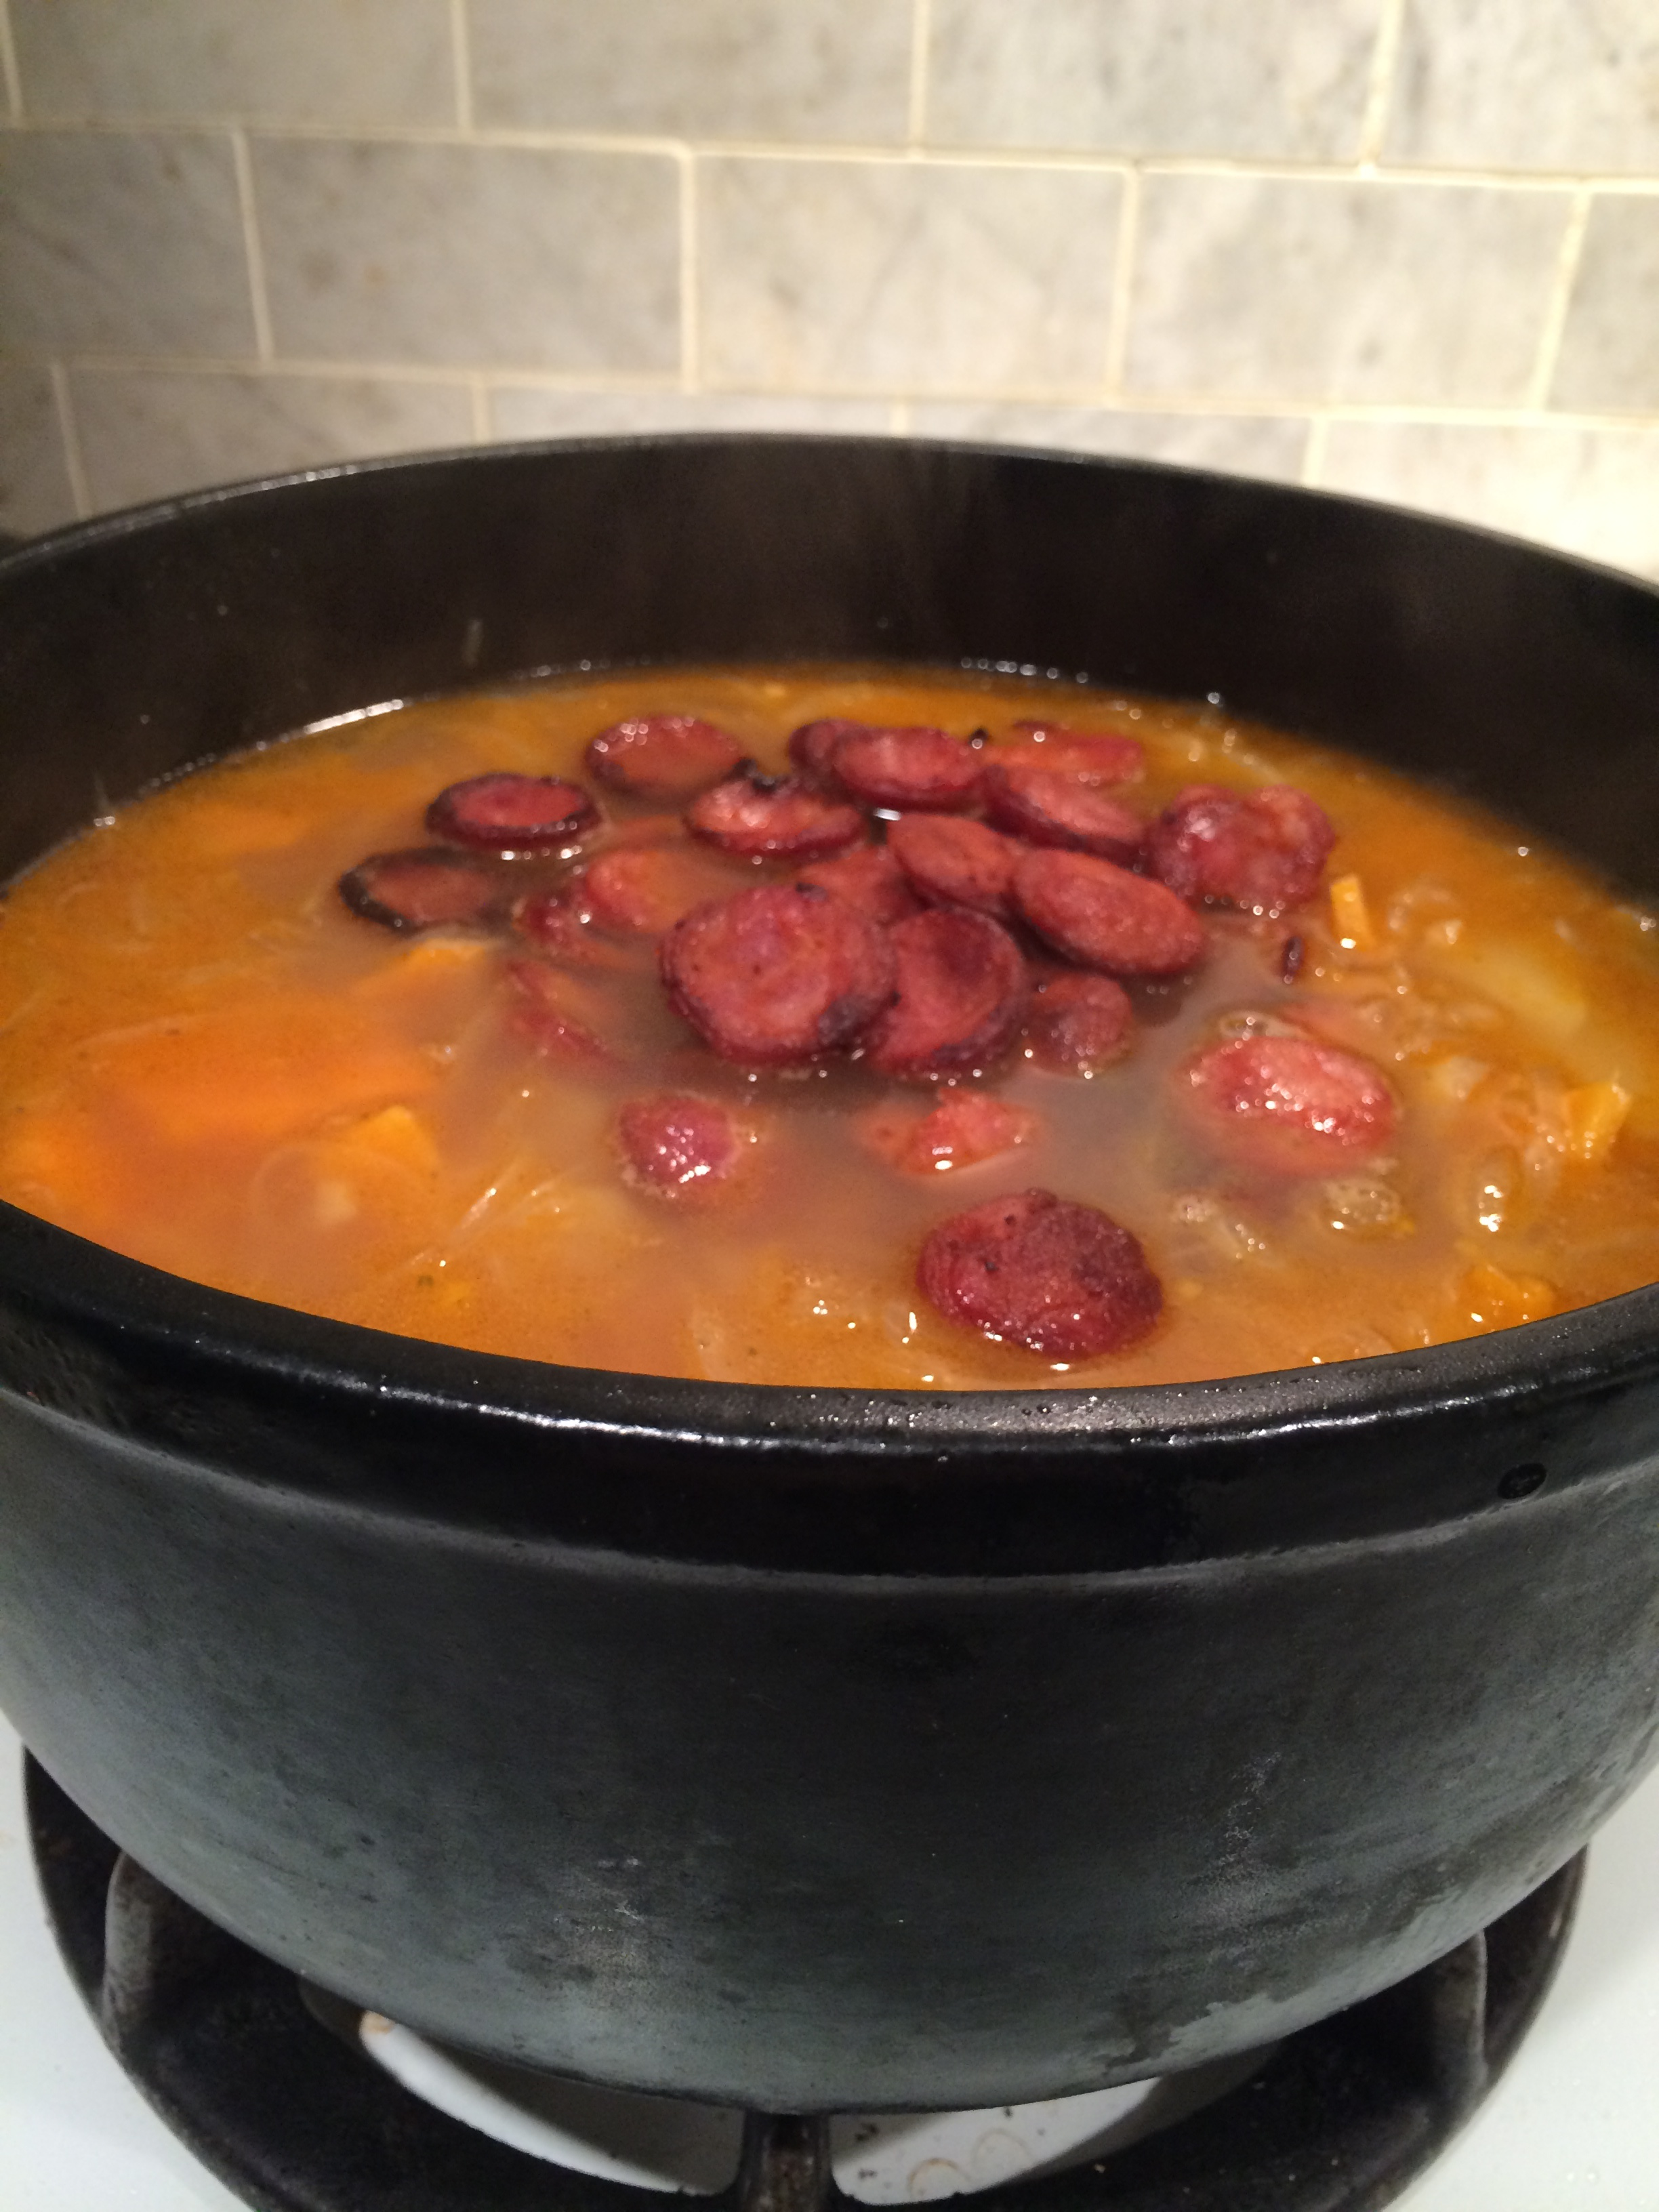 Now we're talking. Chorizo in soup.